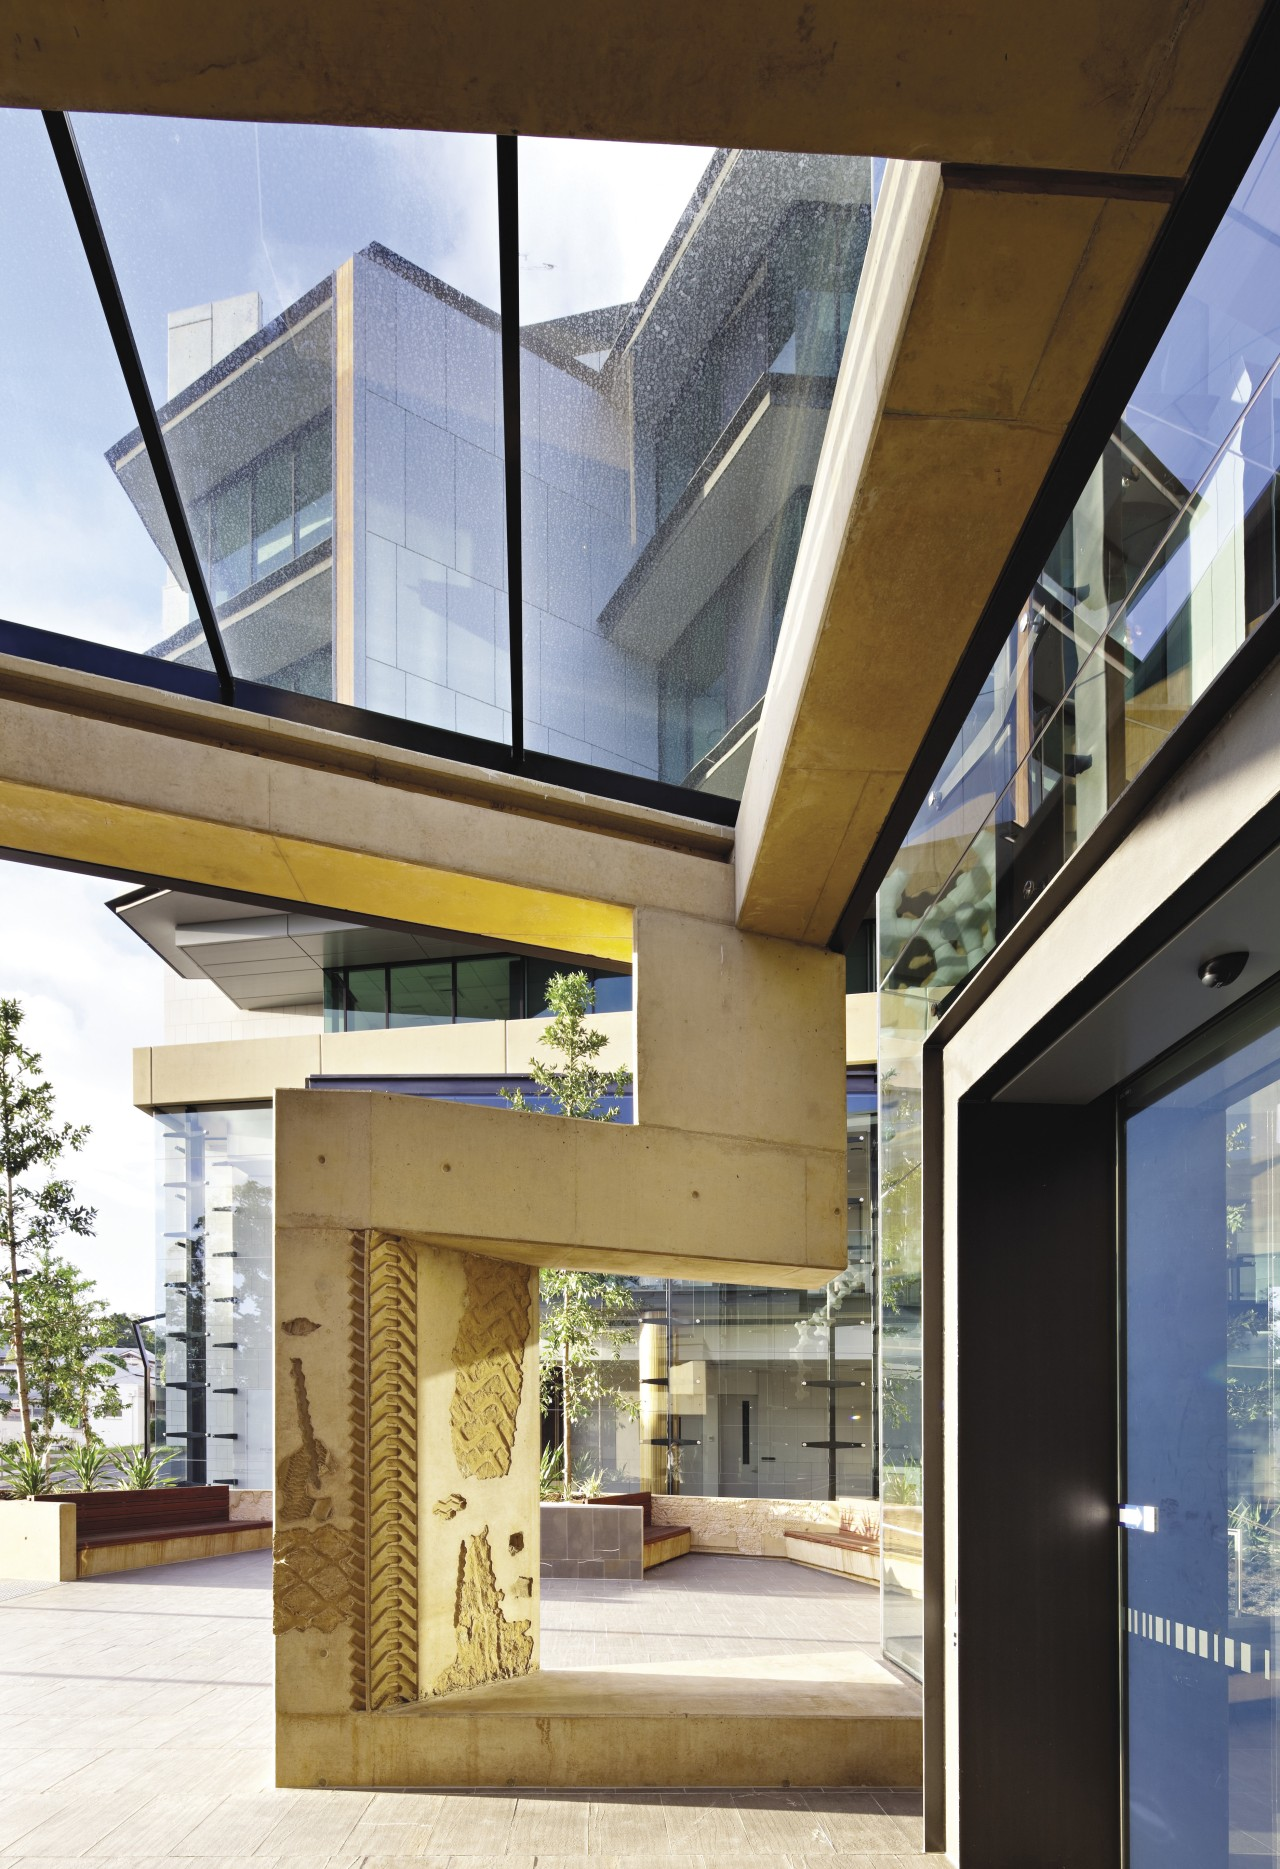 QLD Department of Justice and Attorney architecture, daylighting, house, real estate, window, brown